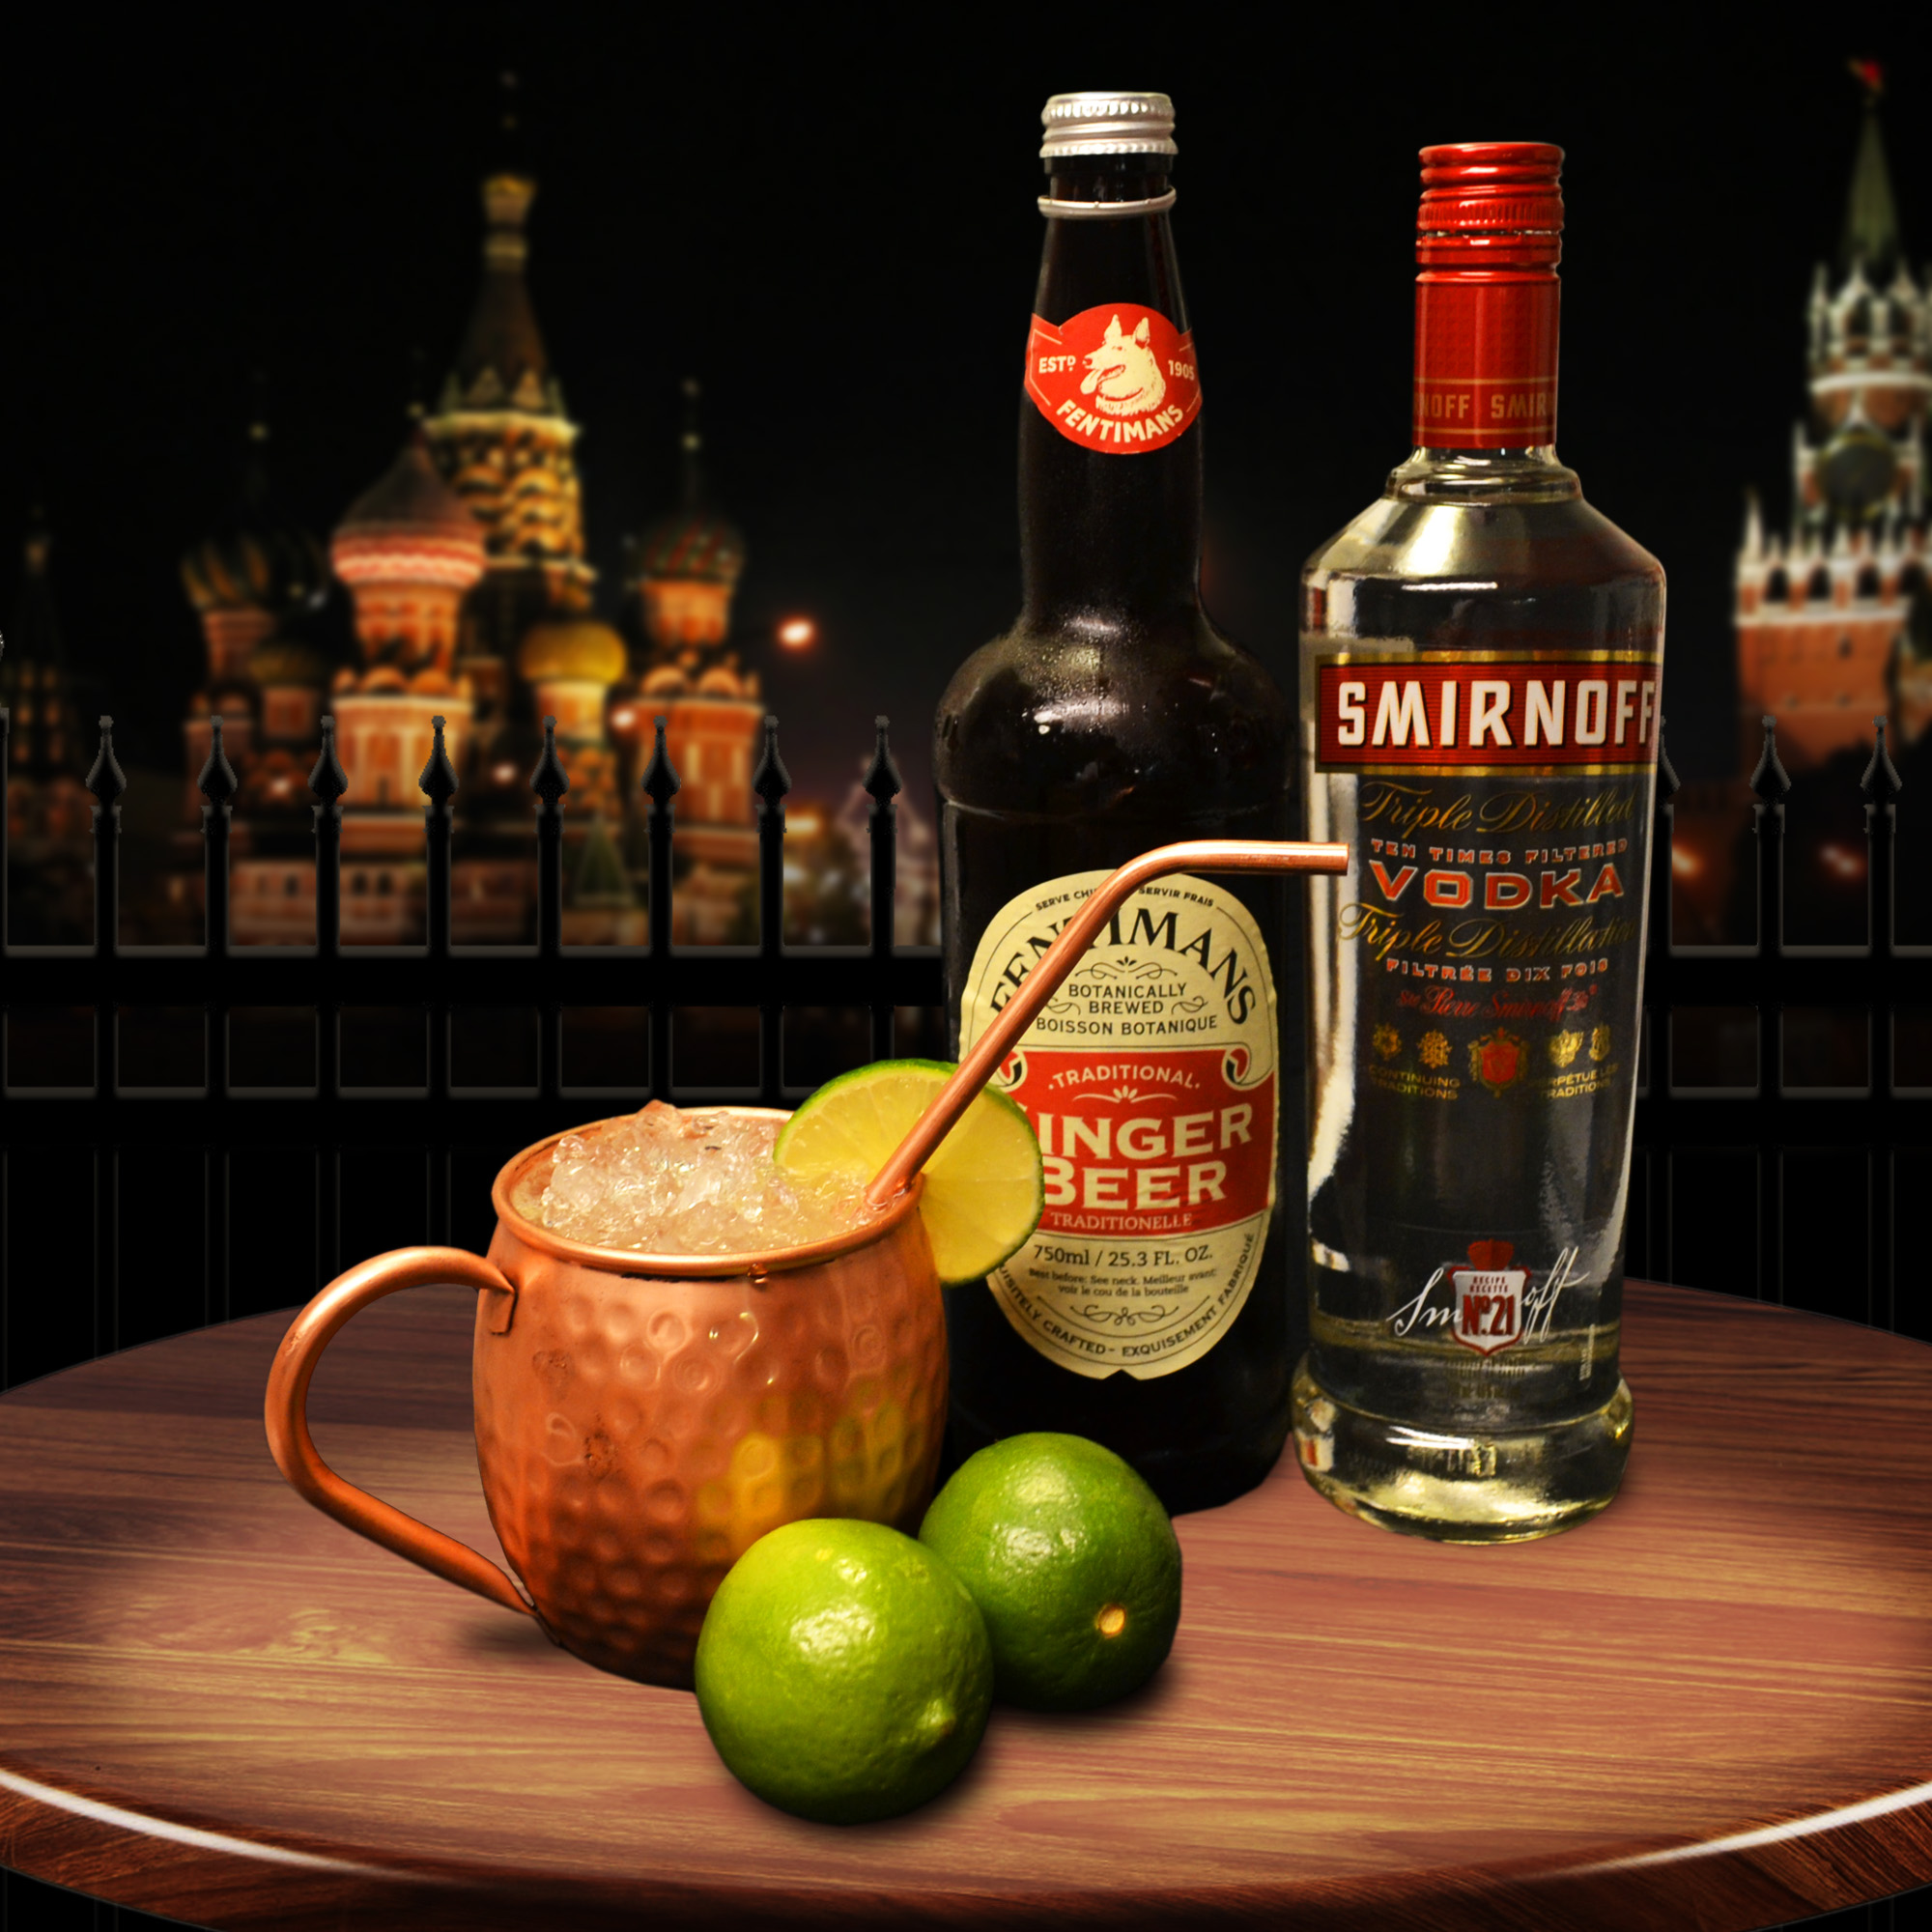 The Moscow Mule may have nothing to do with Russia - but it is damn tasty